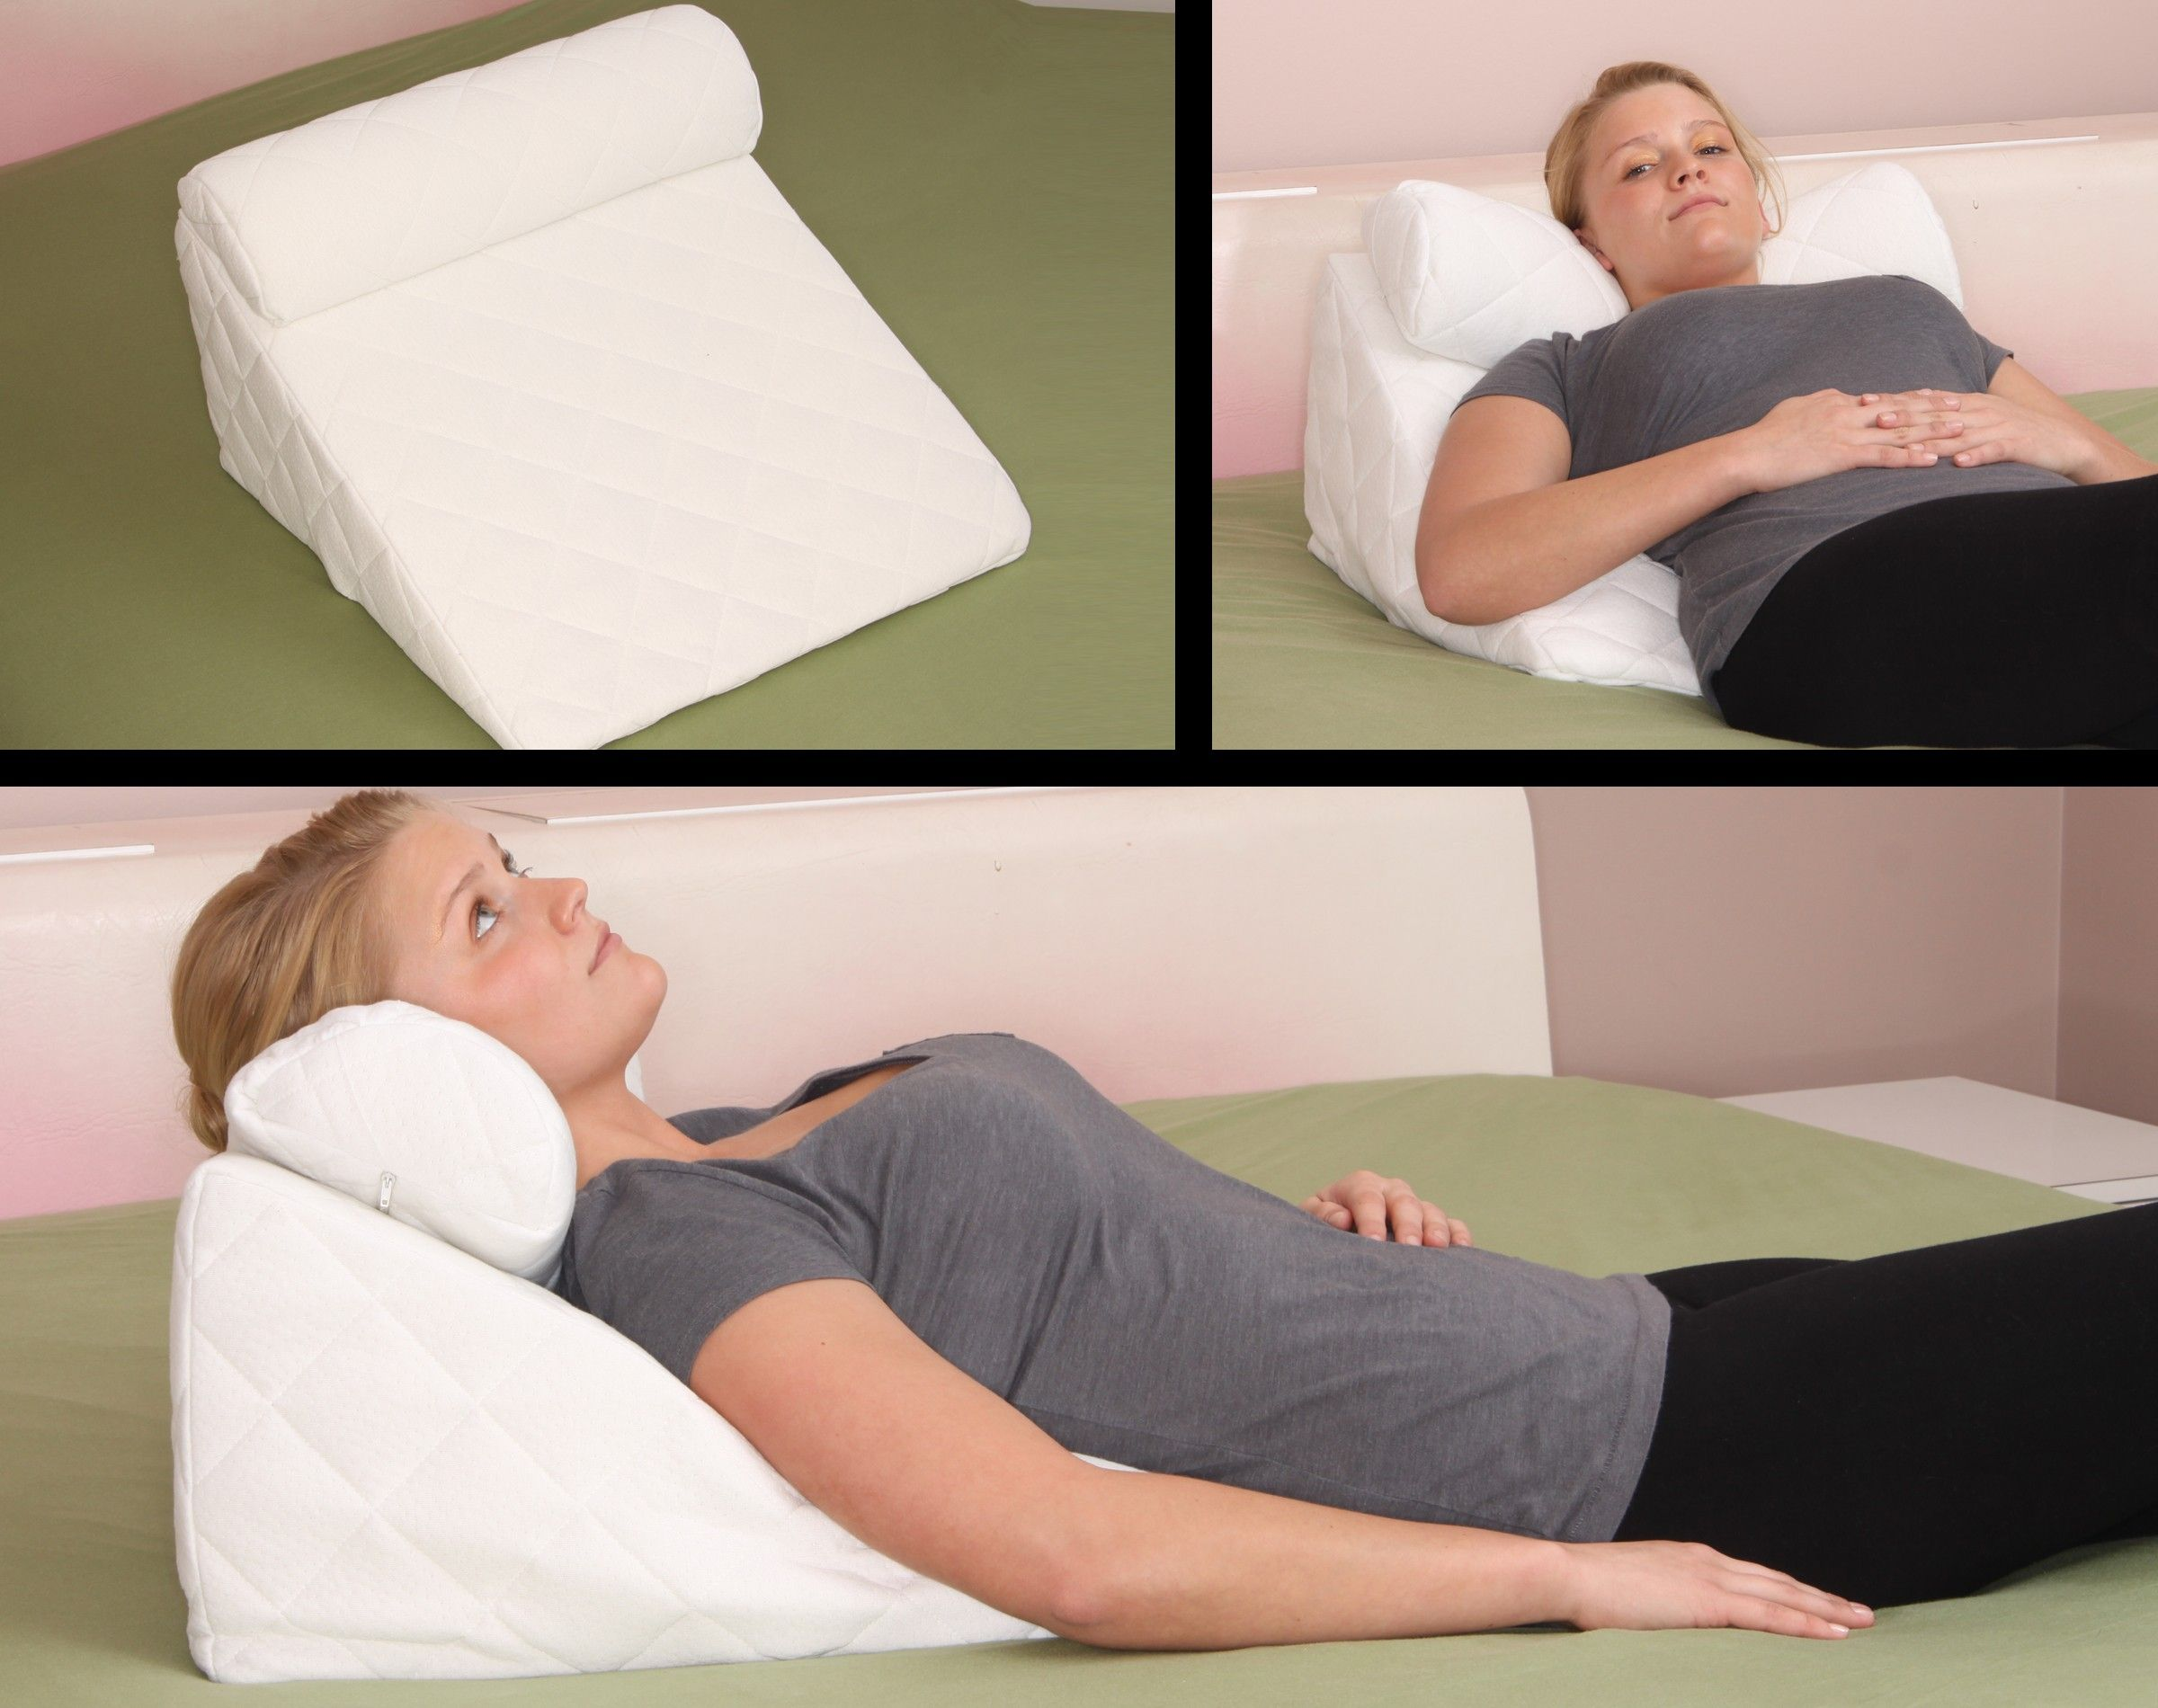 Acid Reflux Pillow Deluxe Comfort Hypoallergenic Memory Foam Bed Wedge Pillow Set 24